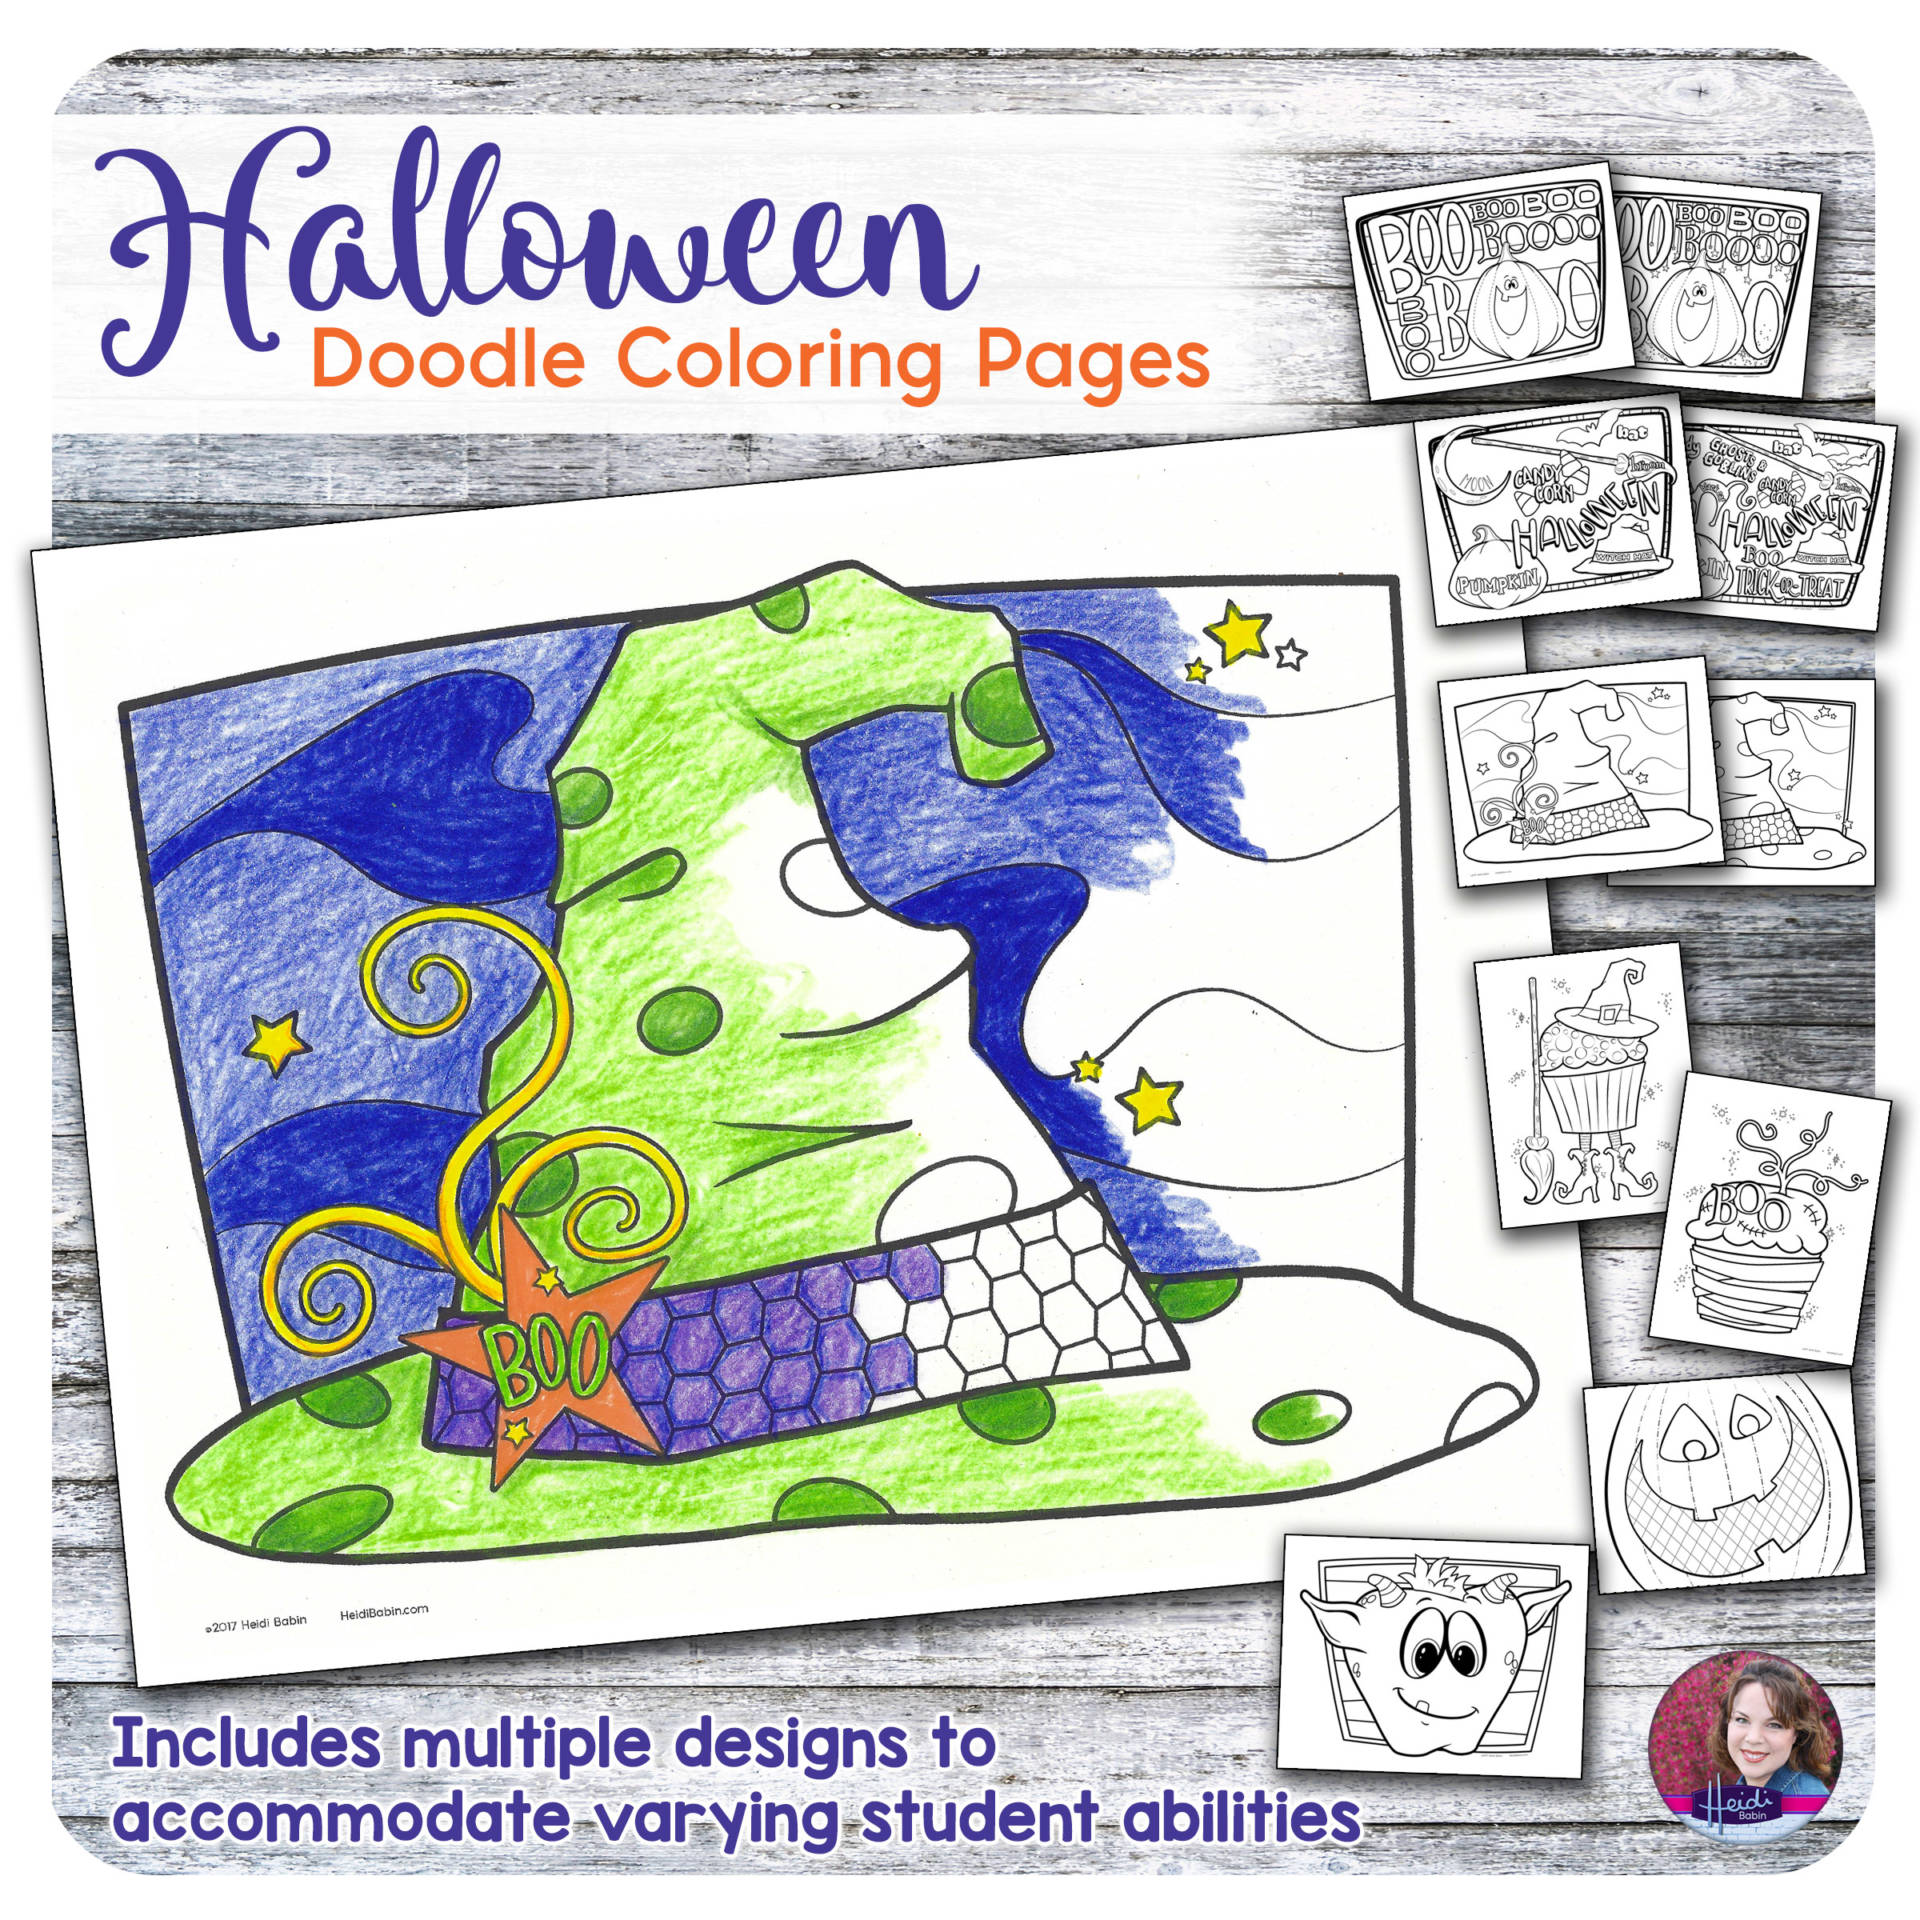 Halloween Doodle Coloring Pages